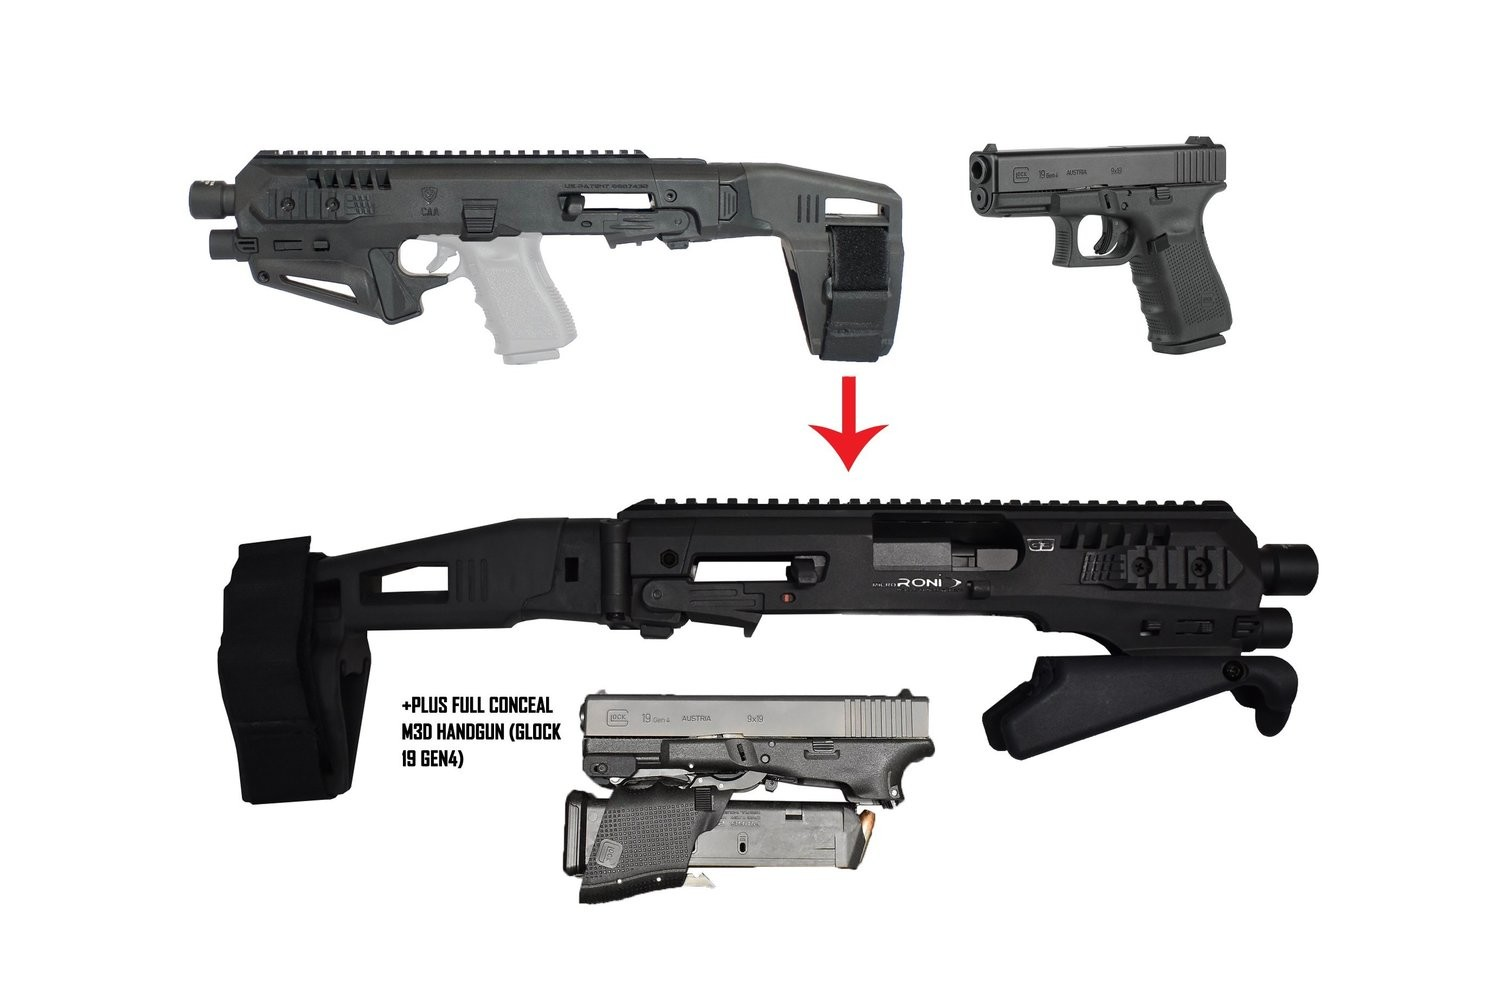 Convert Your Own Micro Roni + Your Own Glock 19 Into The Viper